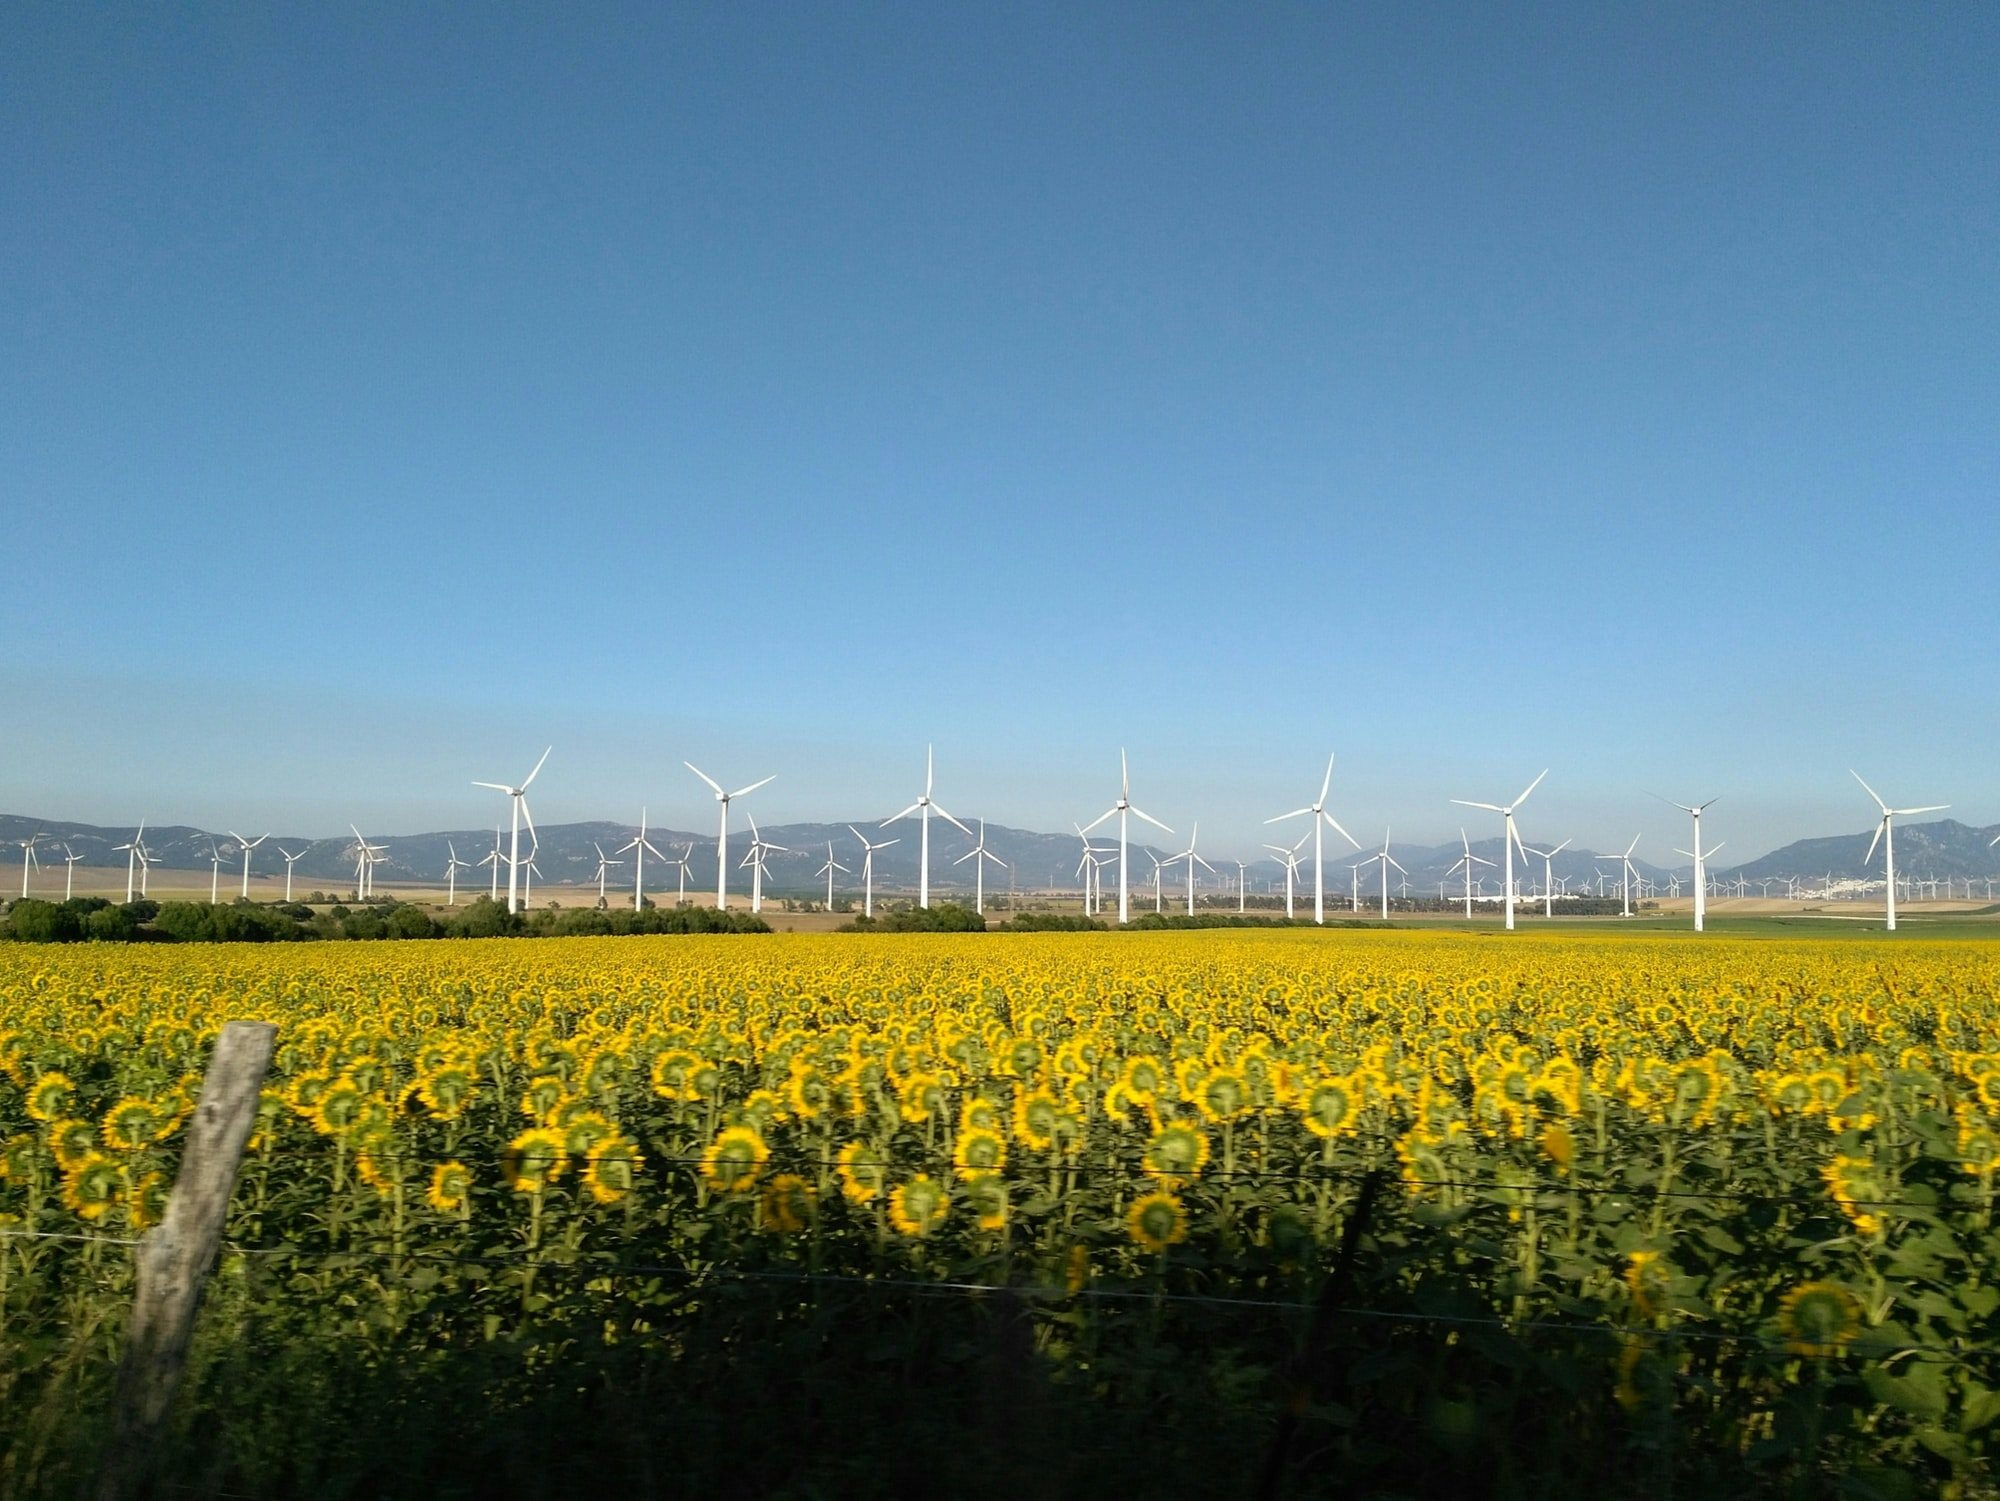 This picture was taken during a trip between Sevilla and Marbella. I focus the camera to the windmills to contrast with the sunflowers moving on purpose so did we drive the car to get this effect. It was a family trip full of amaizing vews on the road.